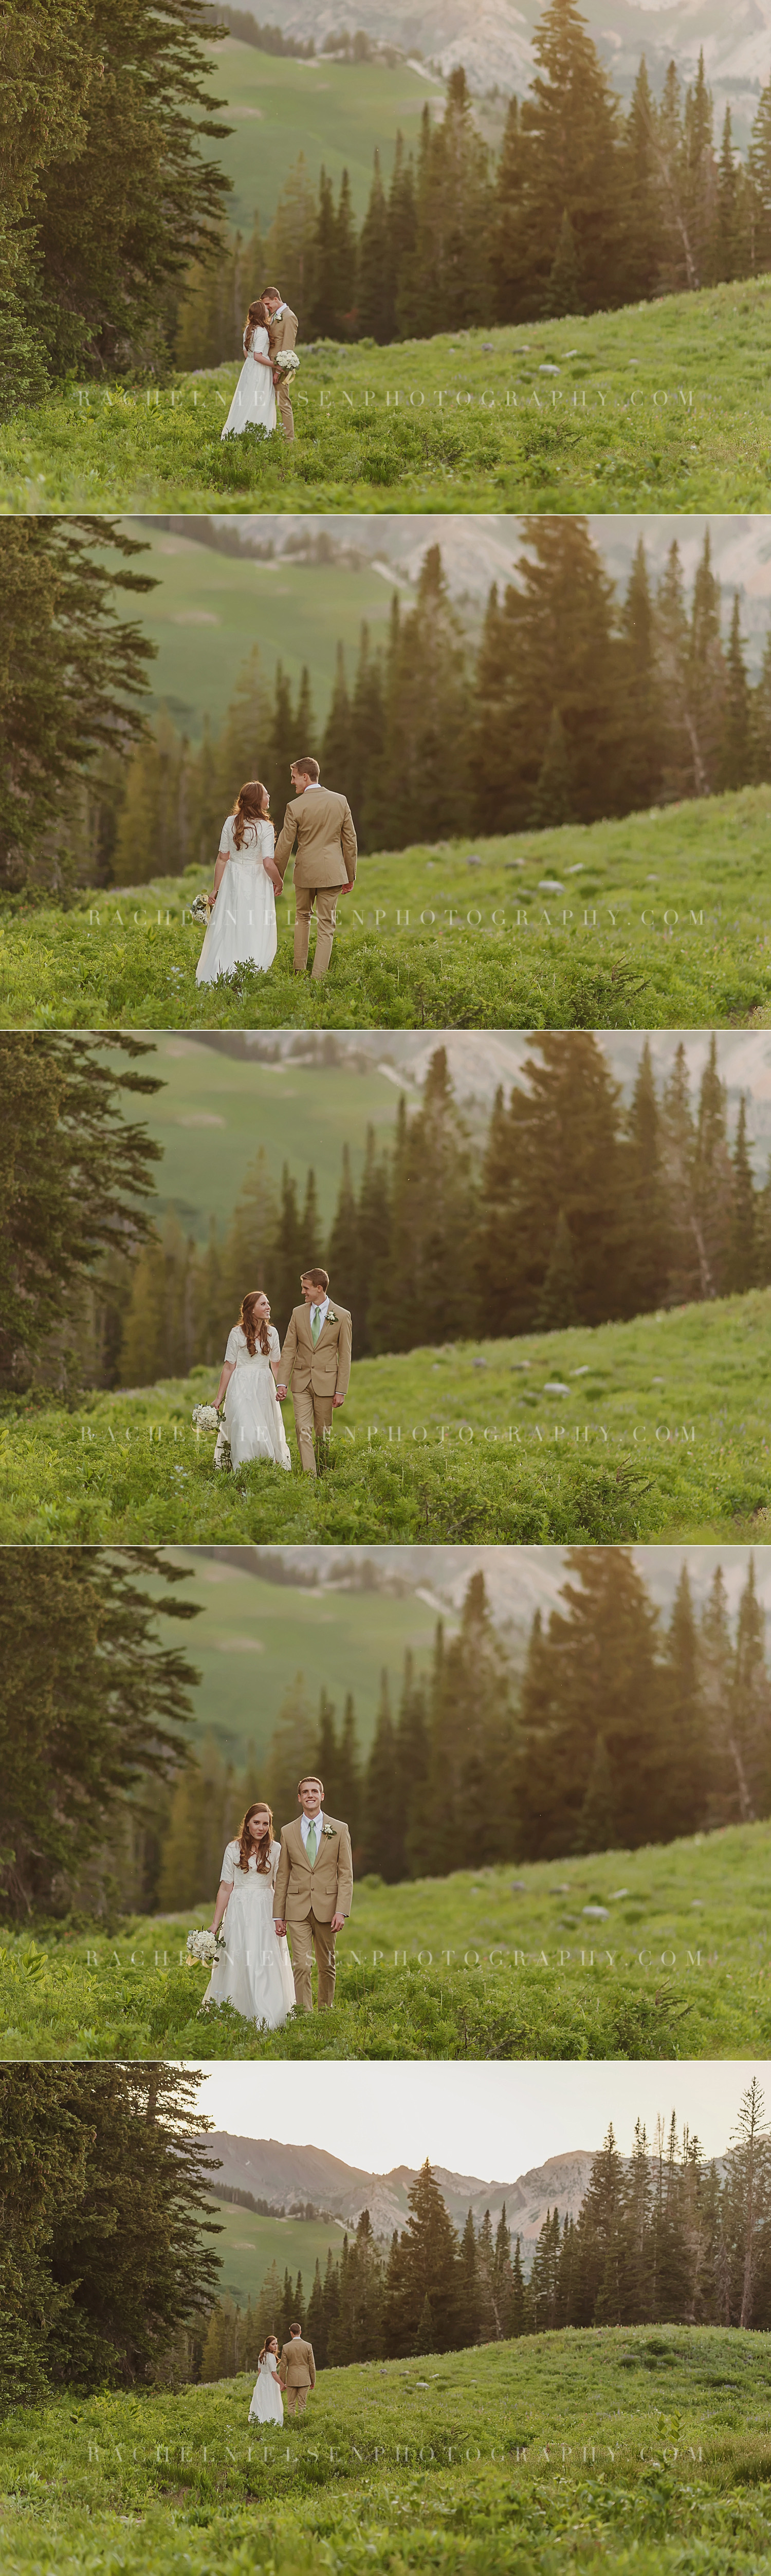 Albion-Basin-Bride-and-Groom-10